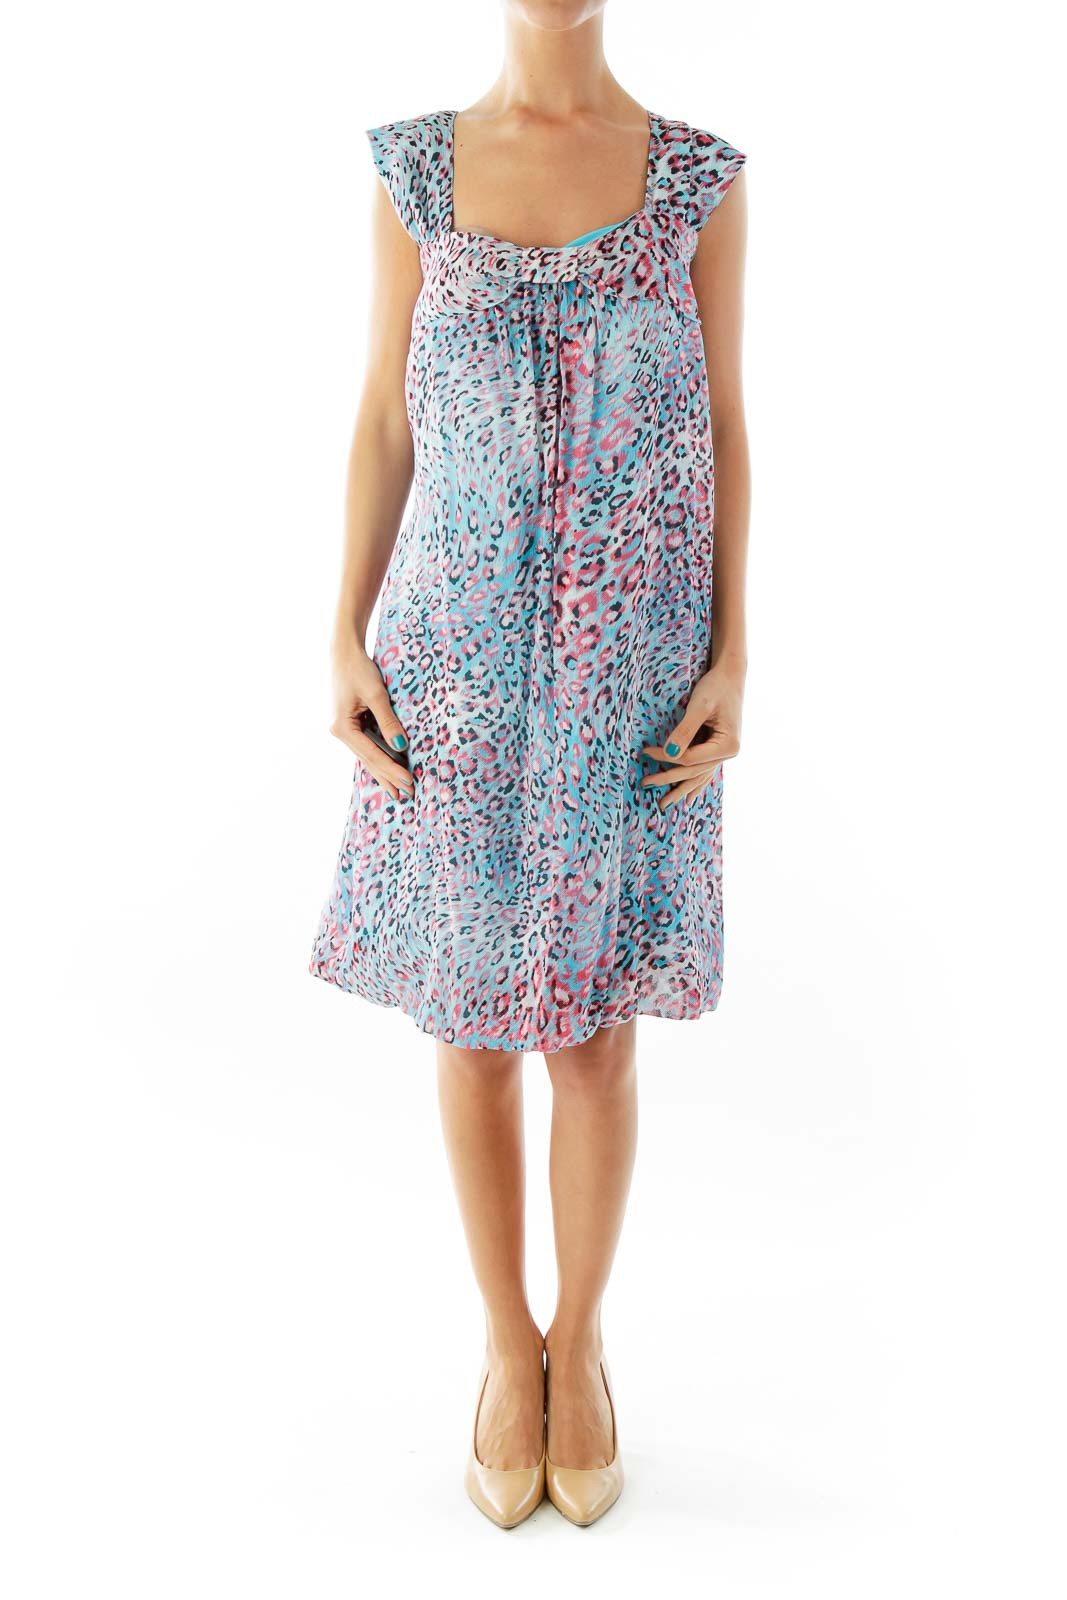 Blue Pink Cheetah Print Day Dress Front